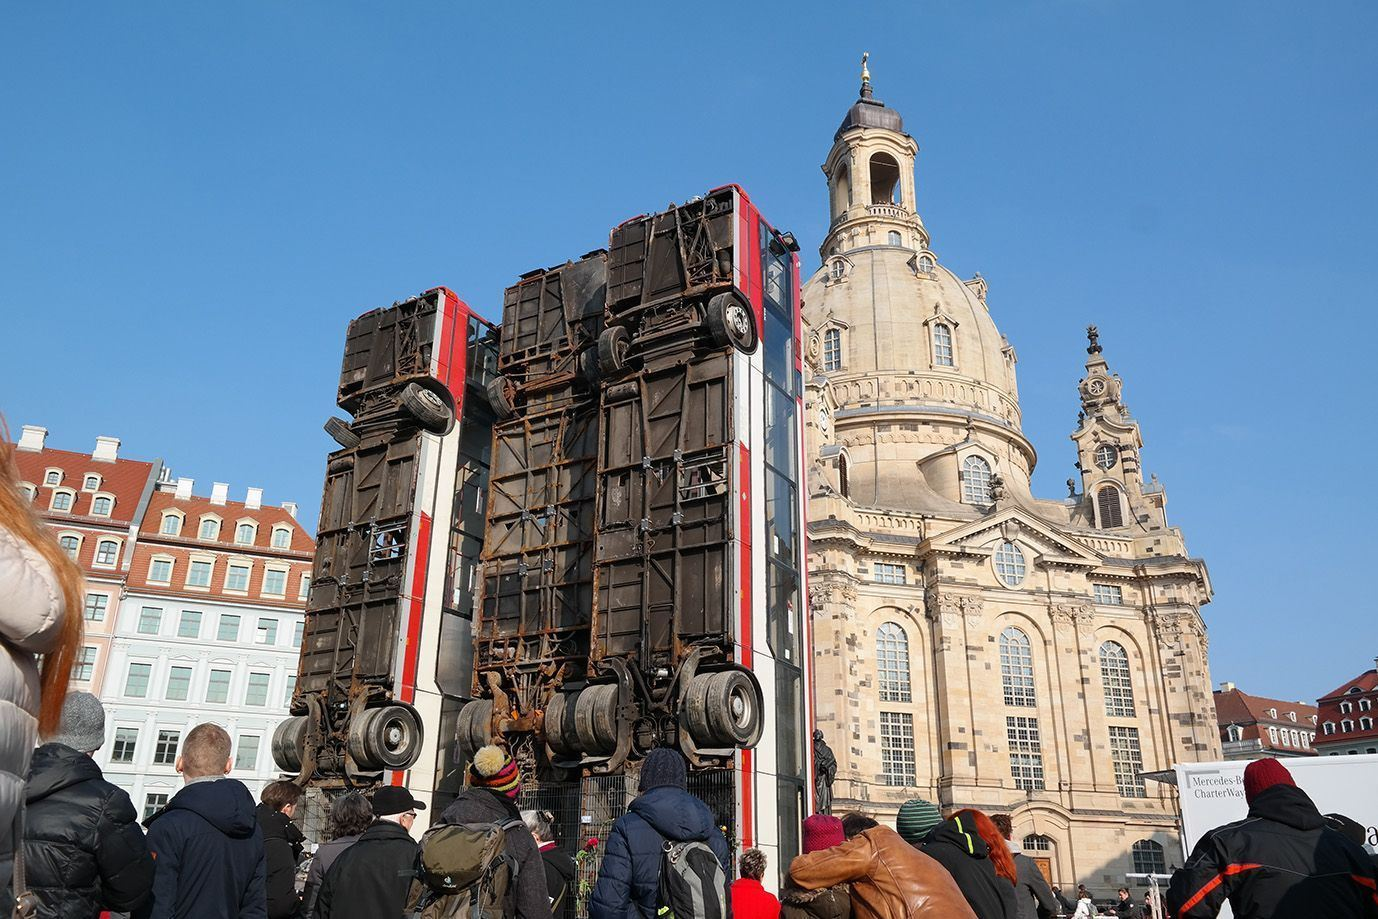 Public art installation commissioned by Kunsthaus Dresden for the Art festival At the River